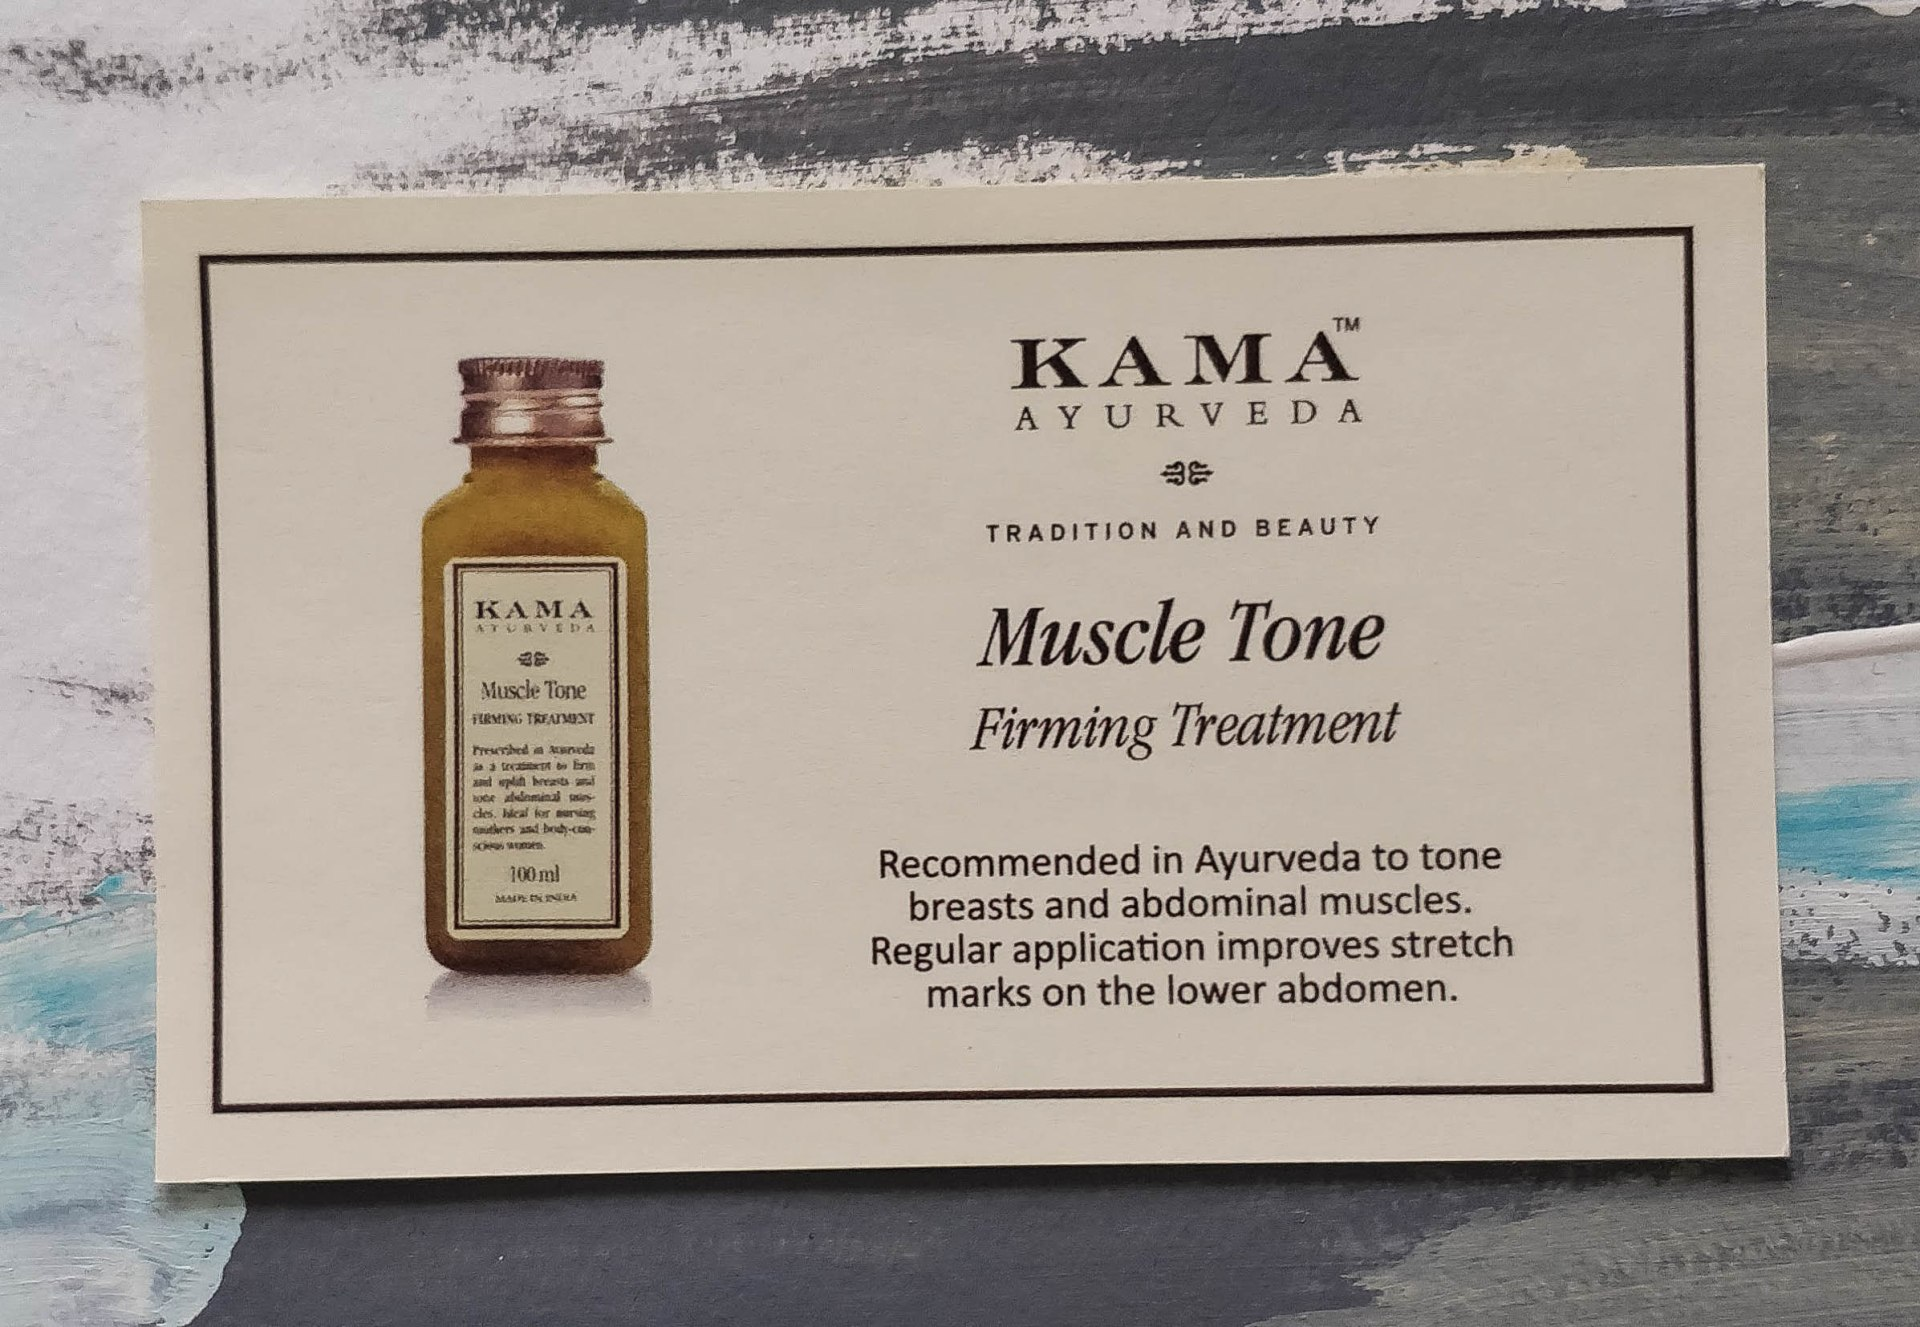 Kama Ayurveda Muscle Tone Firming Treatment